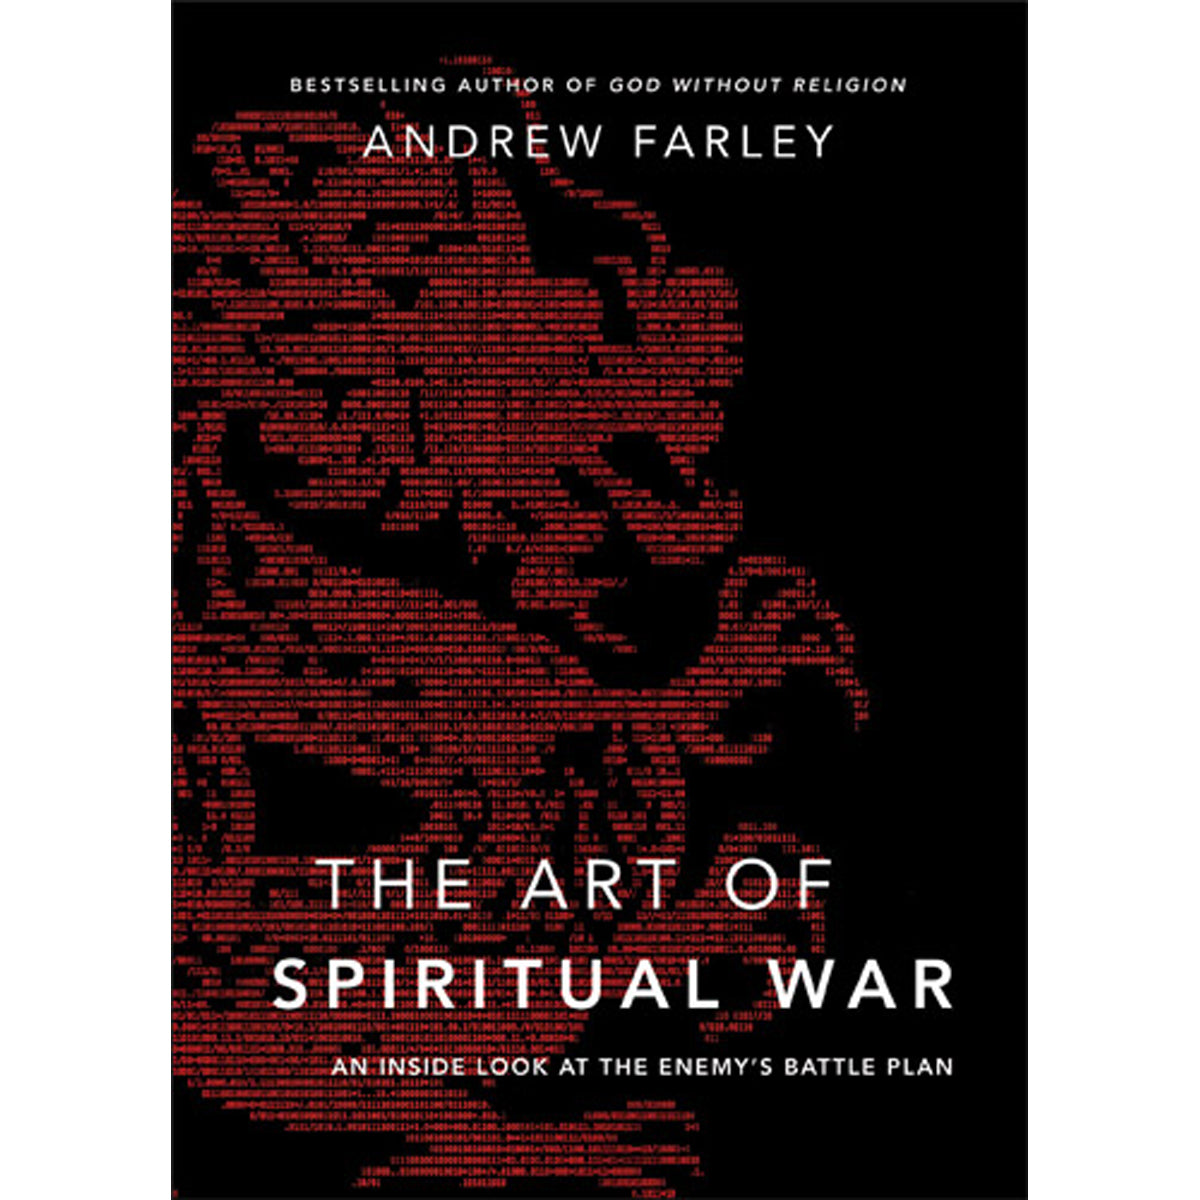 The Art Of Spiritual War (Paperback)